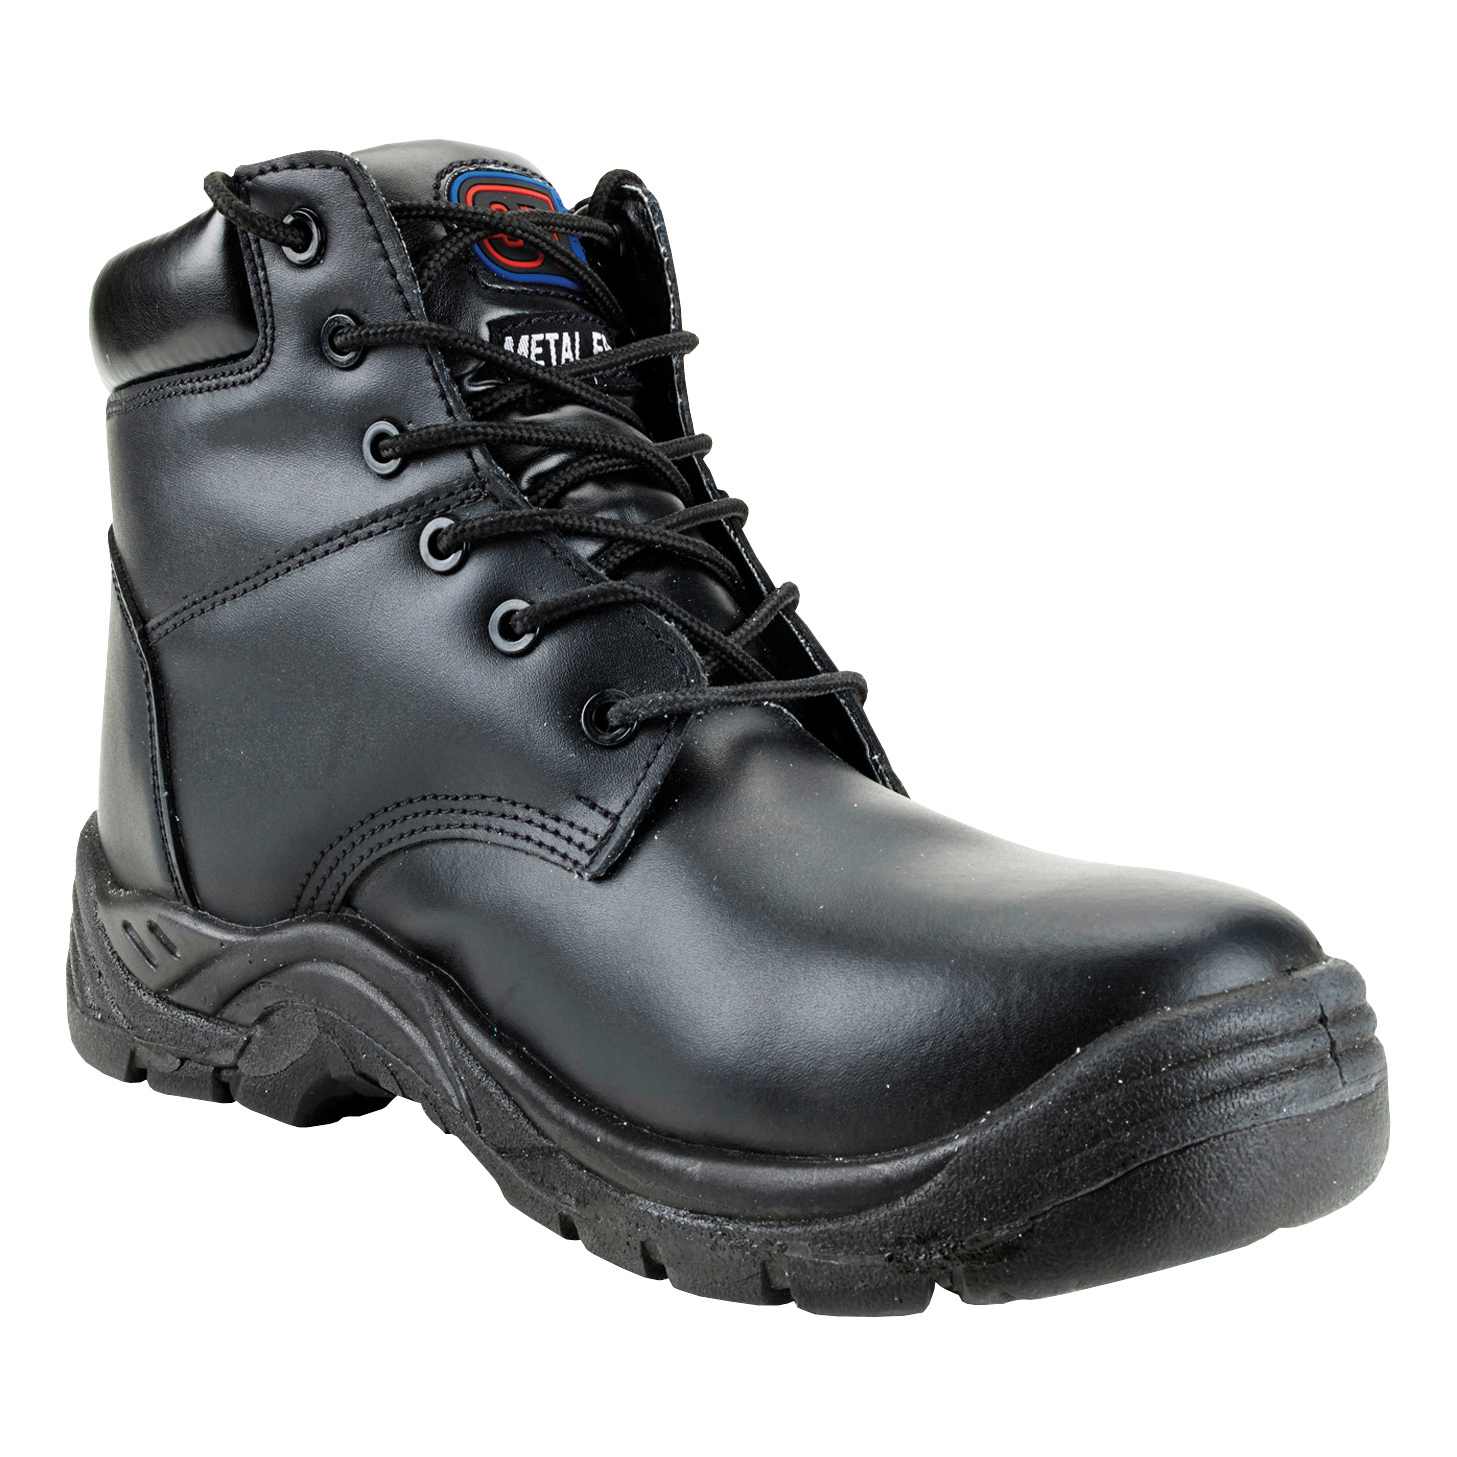 ST Toelite Boot Leather Comp' Midsole Safety Toecap Metal Free sze 11 Blk Ref 90176 *Approx 3 Day L/Time*